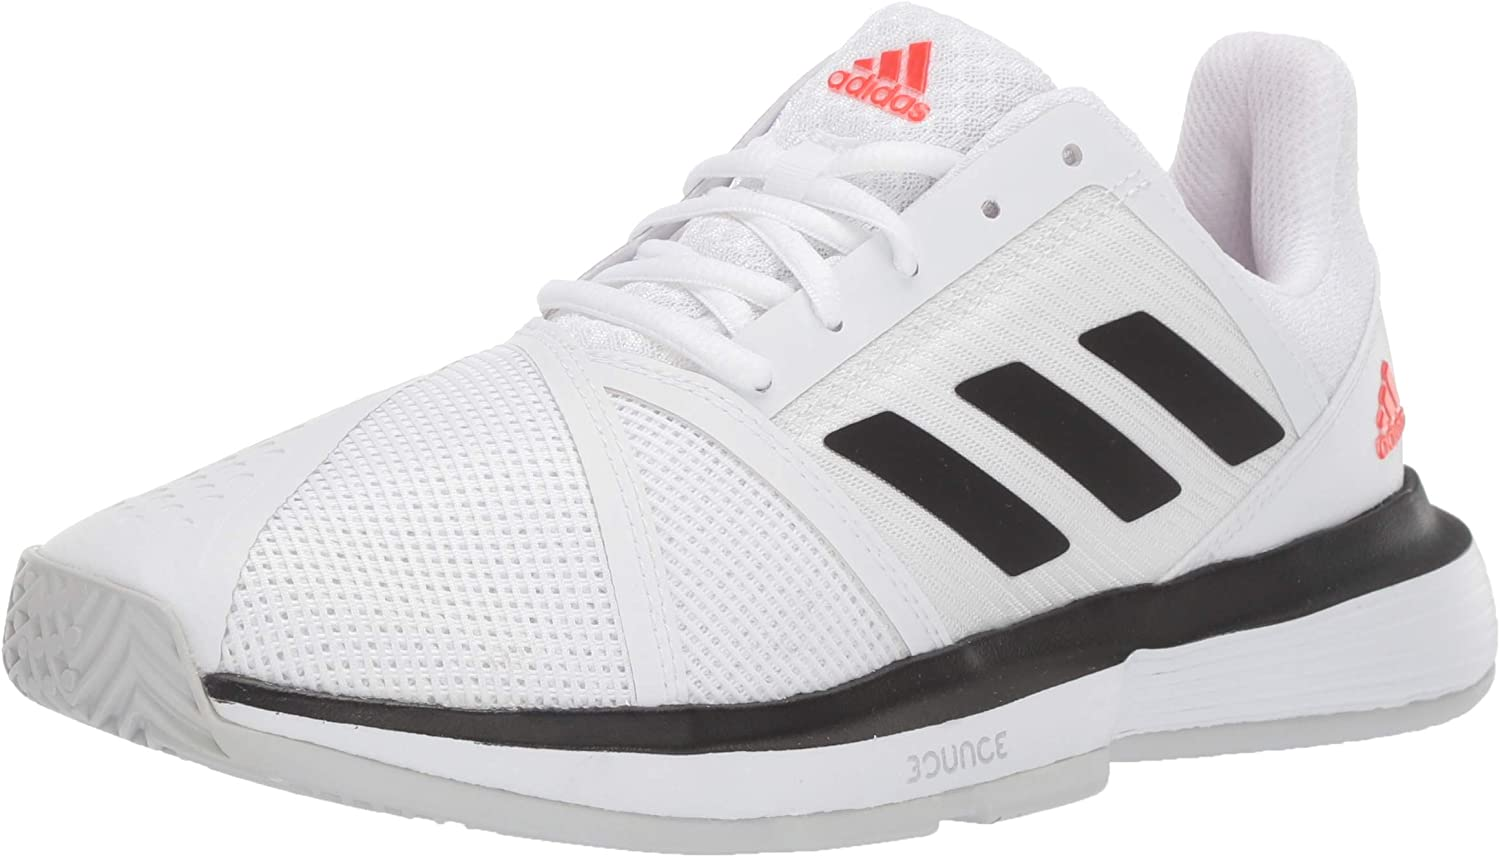 adidas Mens Courtjam Bounce Tennis Shoe